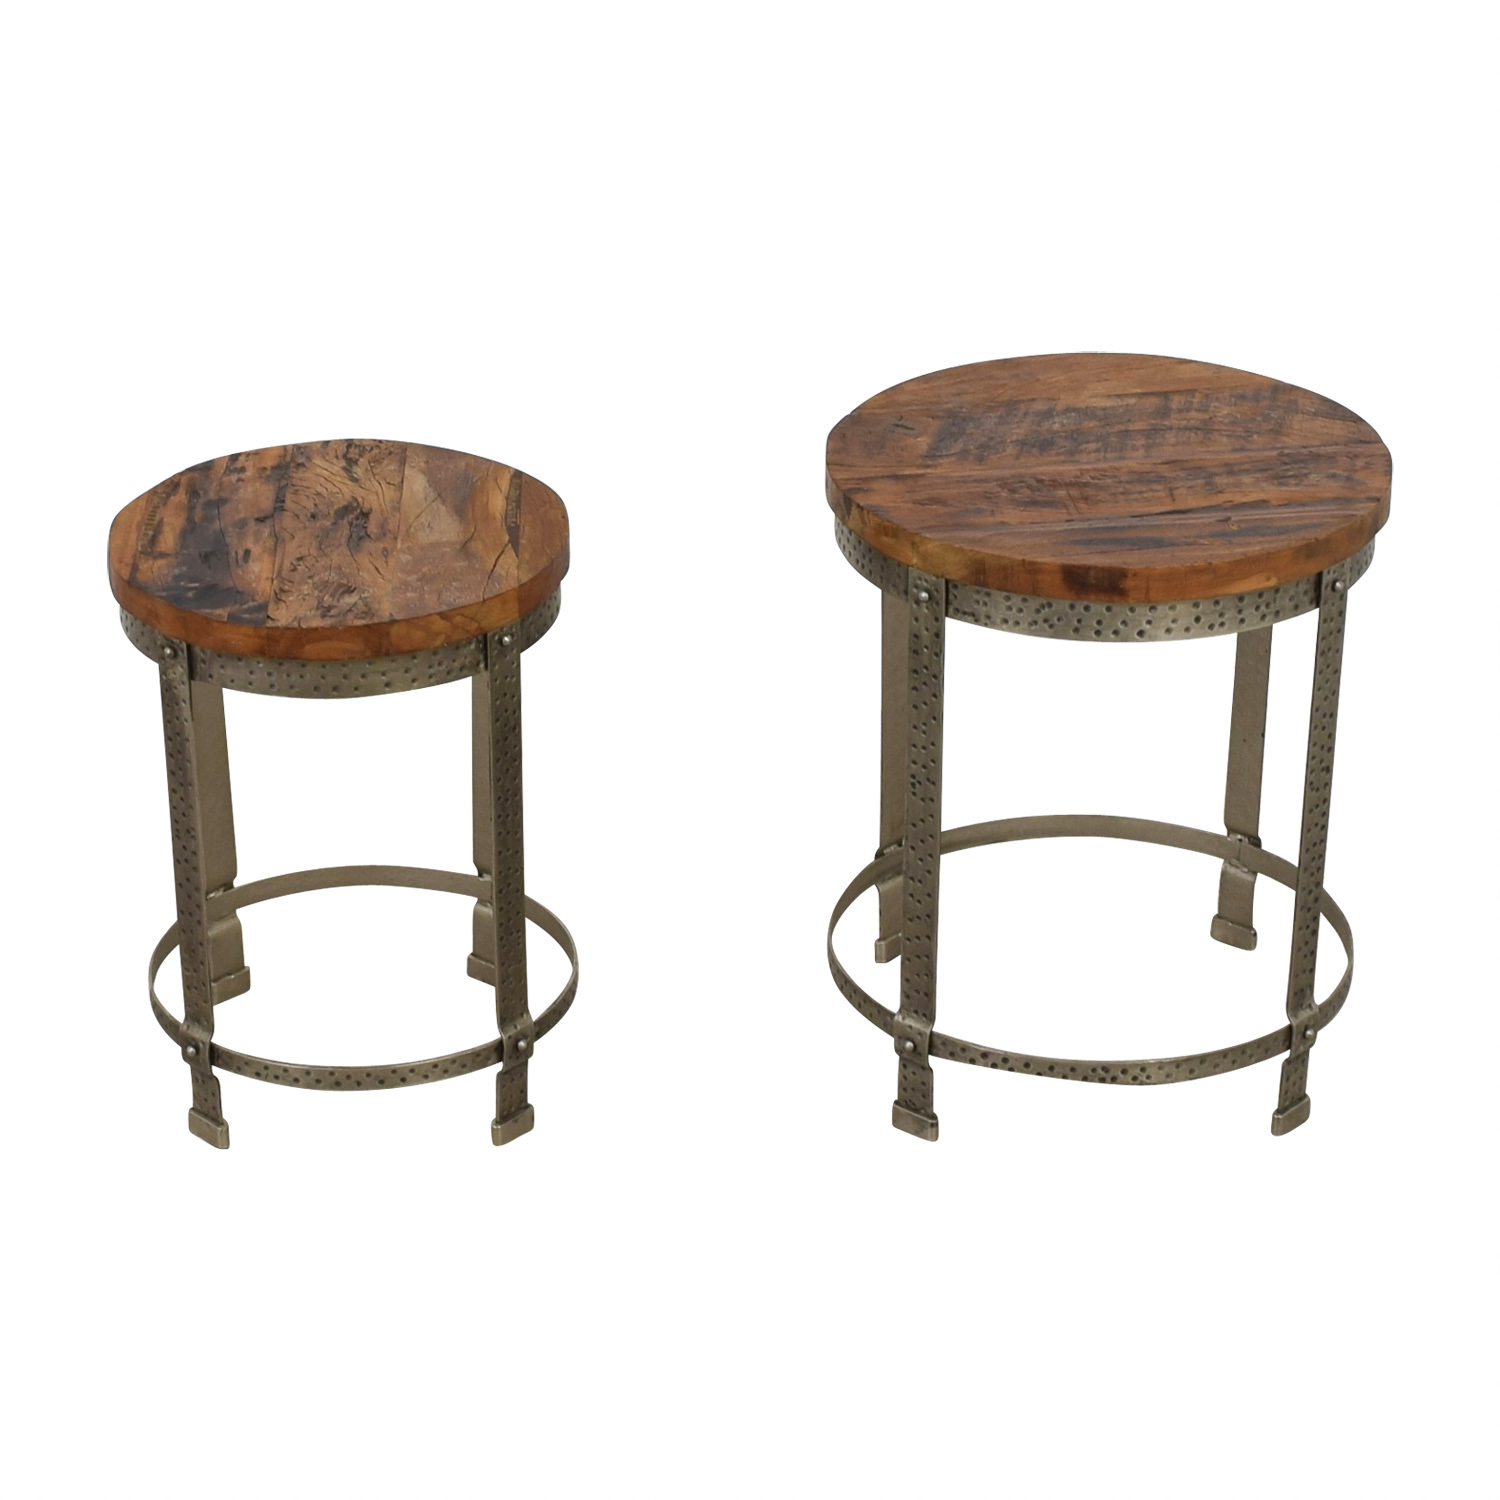 shop  Rustic Wood and Metal Uneven Round Coffee Tables online